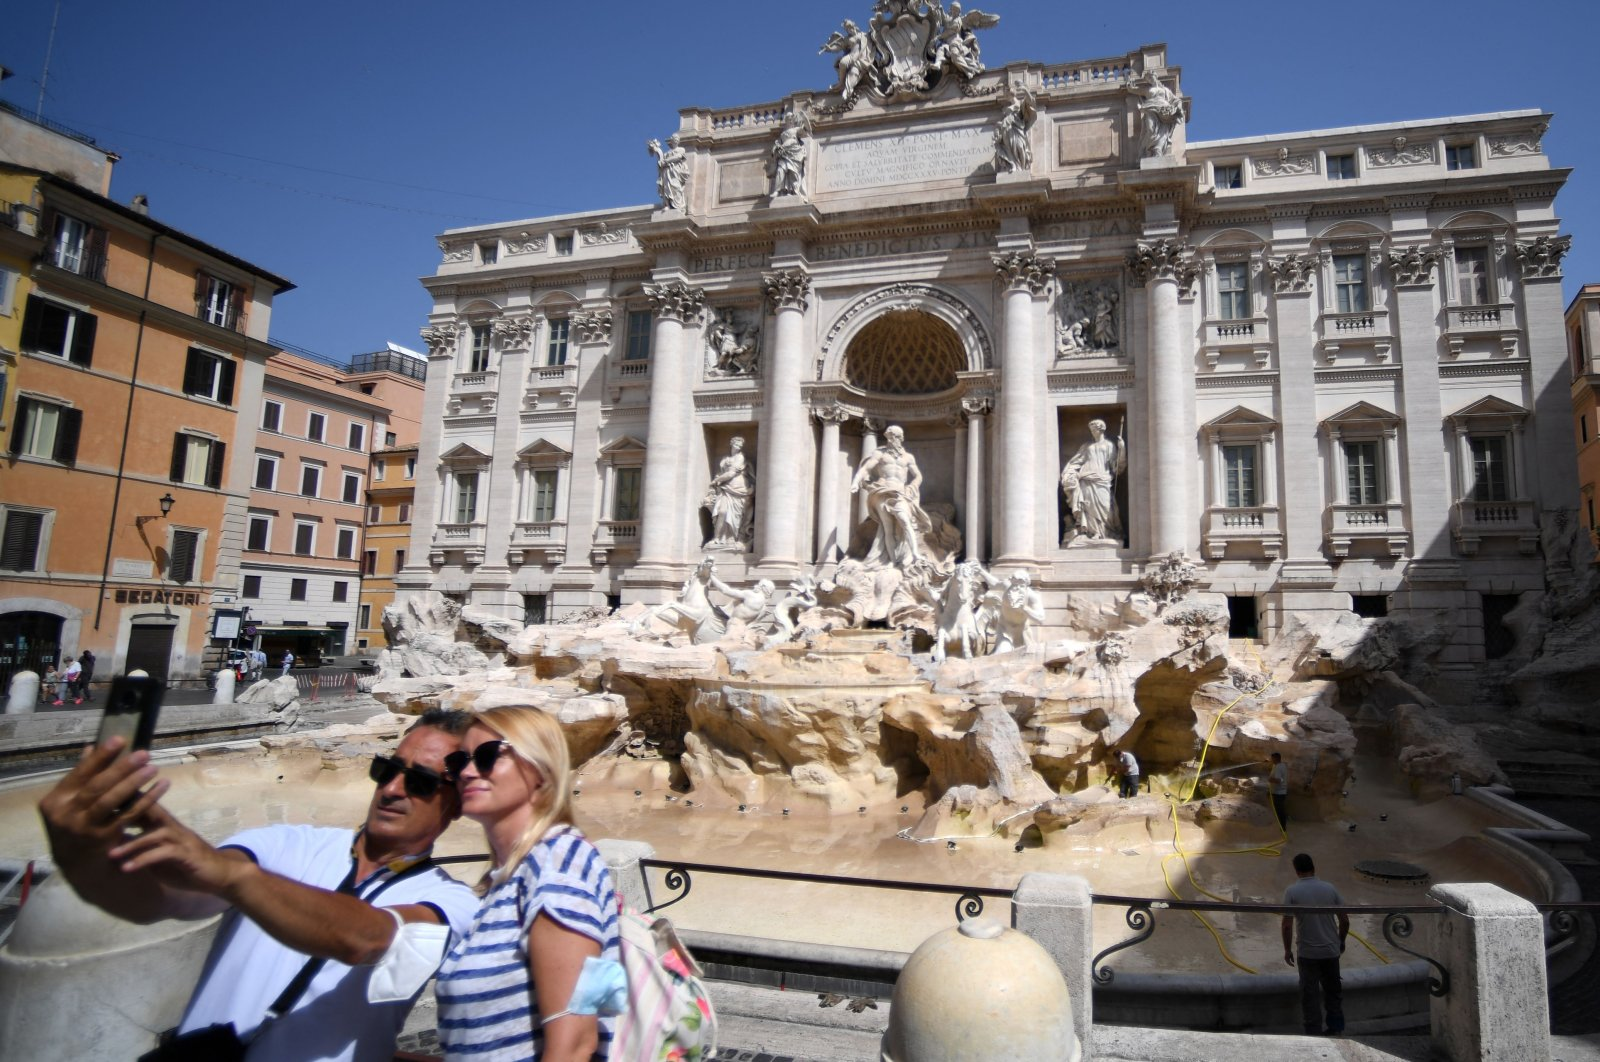 A couple poses for a selfie without protective face masks in front of the Trevi Fountain in Rome, Italy, June 28, 2021. (AFP Photo)